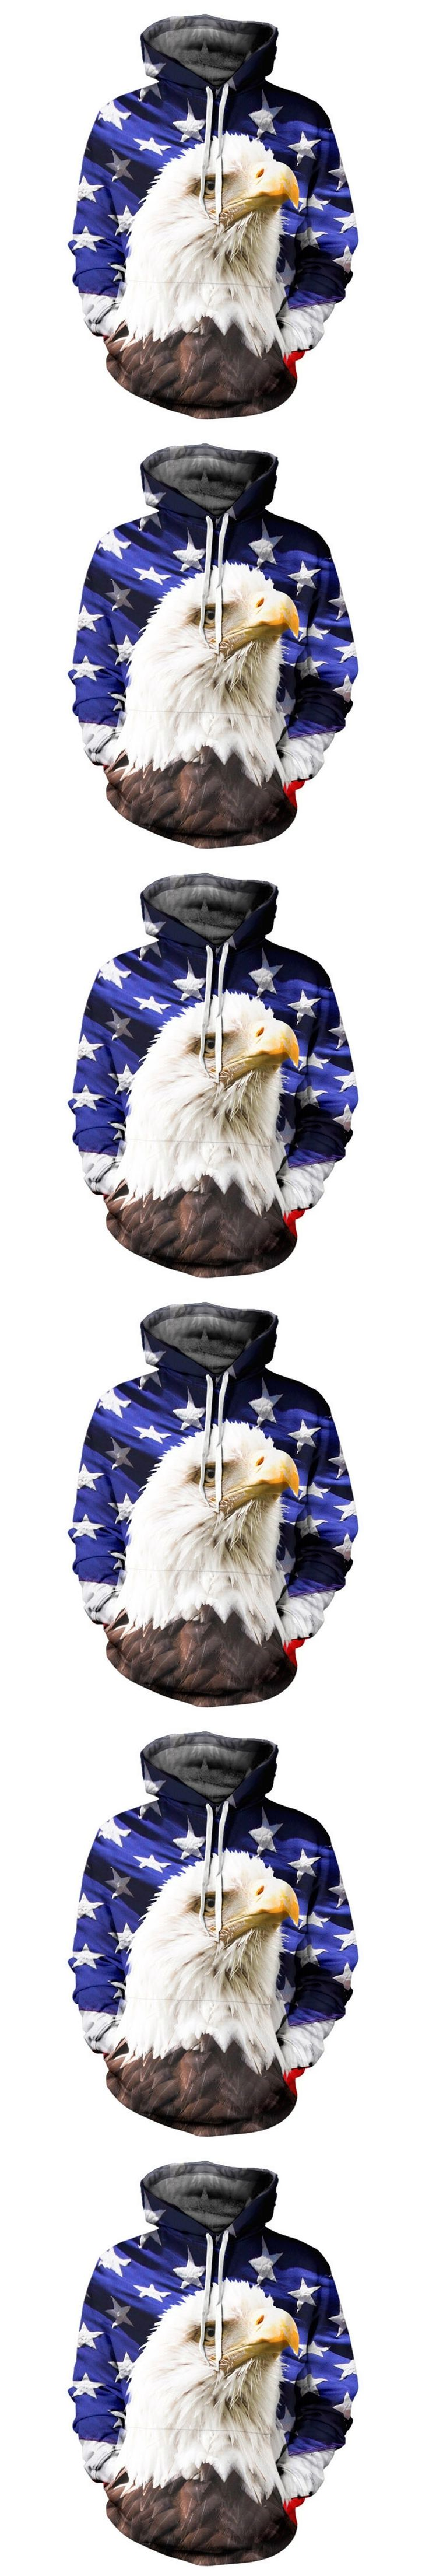 2017 NEW FASHION MEN WOMEN American flag Eagle HOODIE 3D Hoodie Sweatshirts Pullovers Autumn Tracksuit Winter Loose Thin Hoody